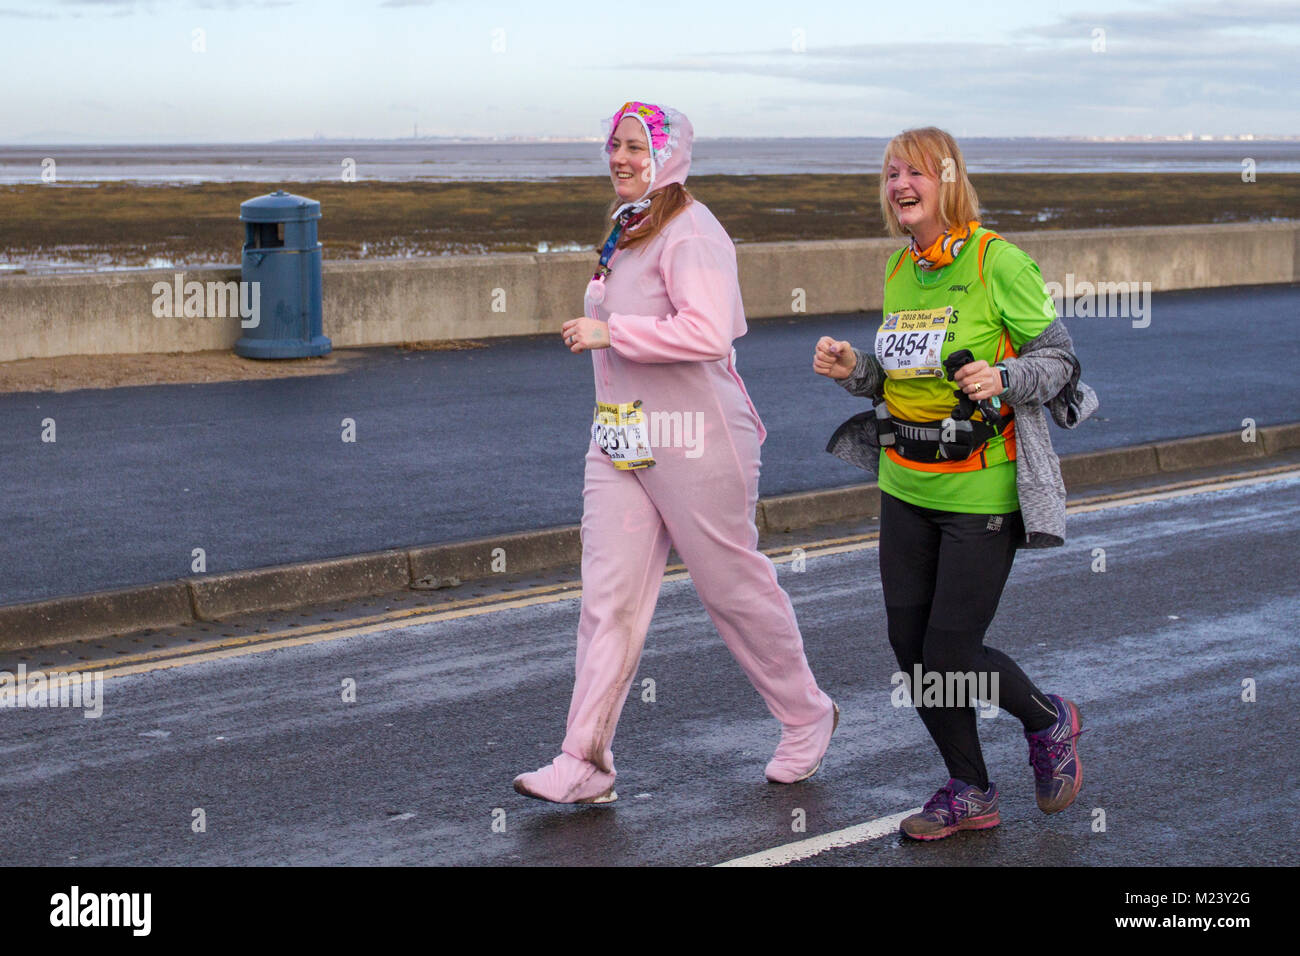 Southport, Merseyside. 4th February, 2018.  The seventh Mad Dog 10k race with runners turning up in fancy dress. Stock Photo